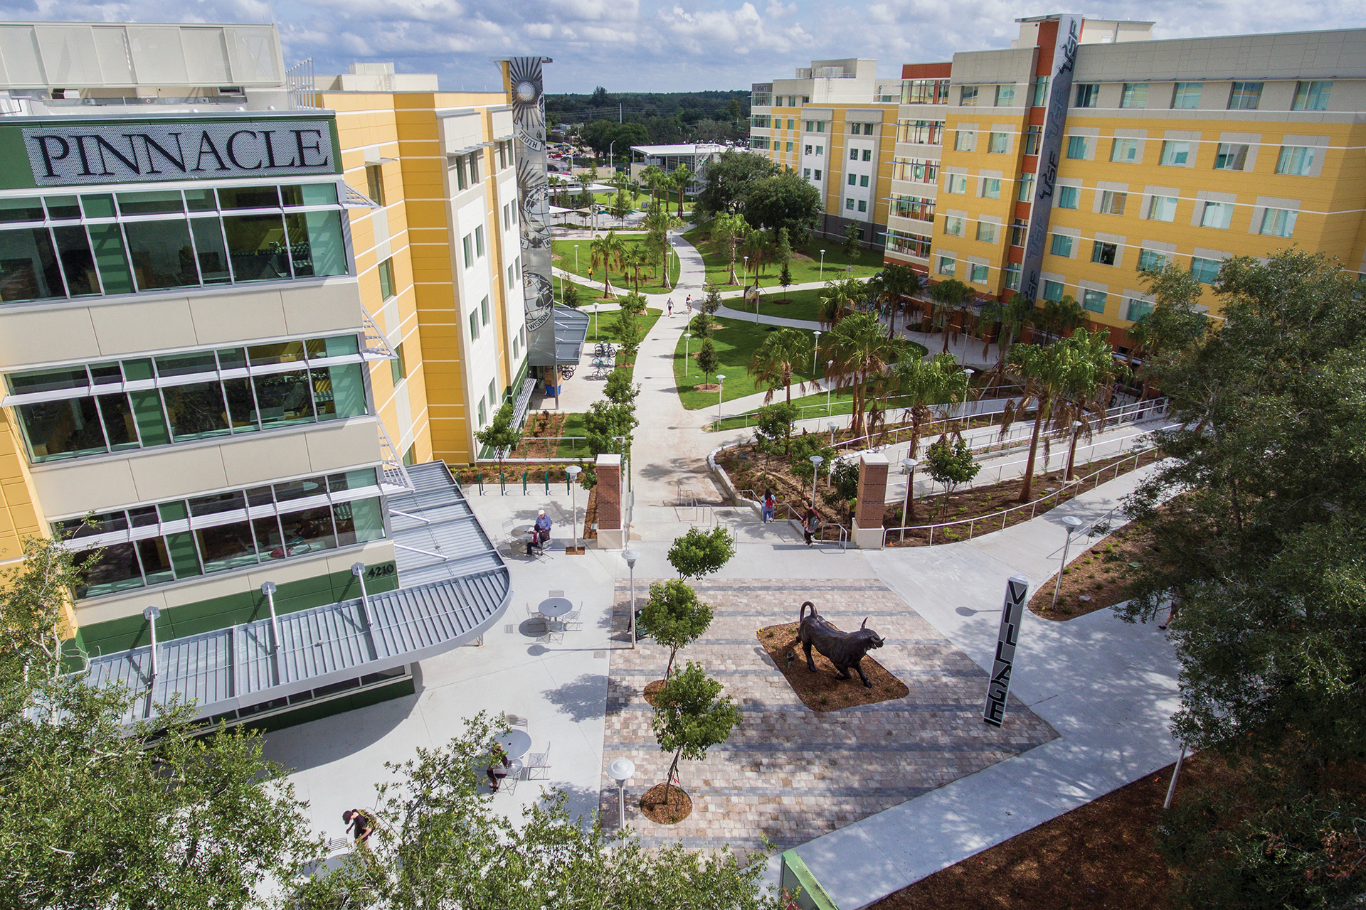 Aerial view of USF campus showing the housing and dining halls available on campus.